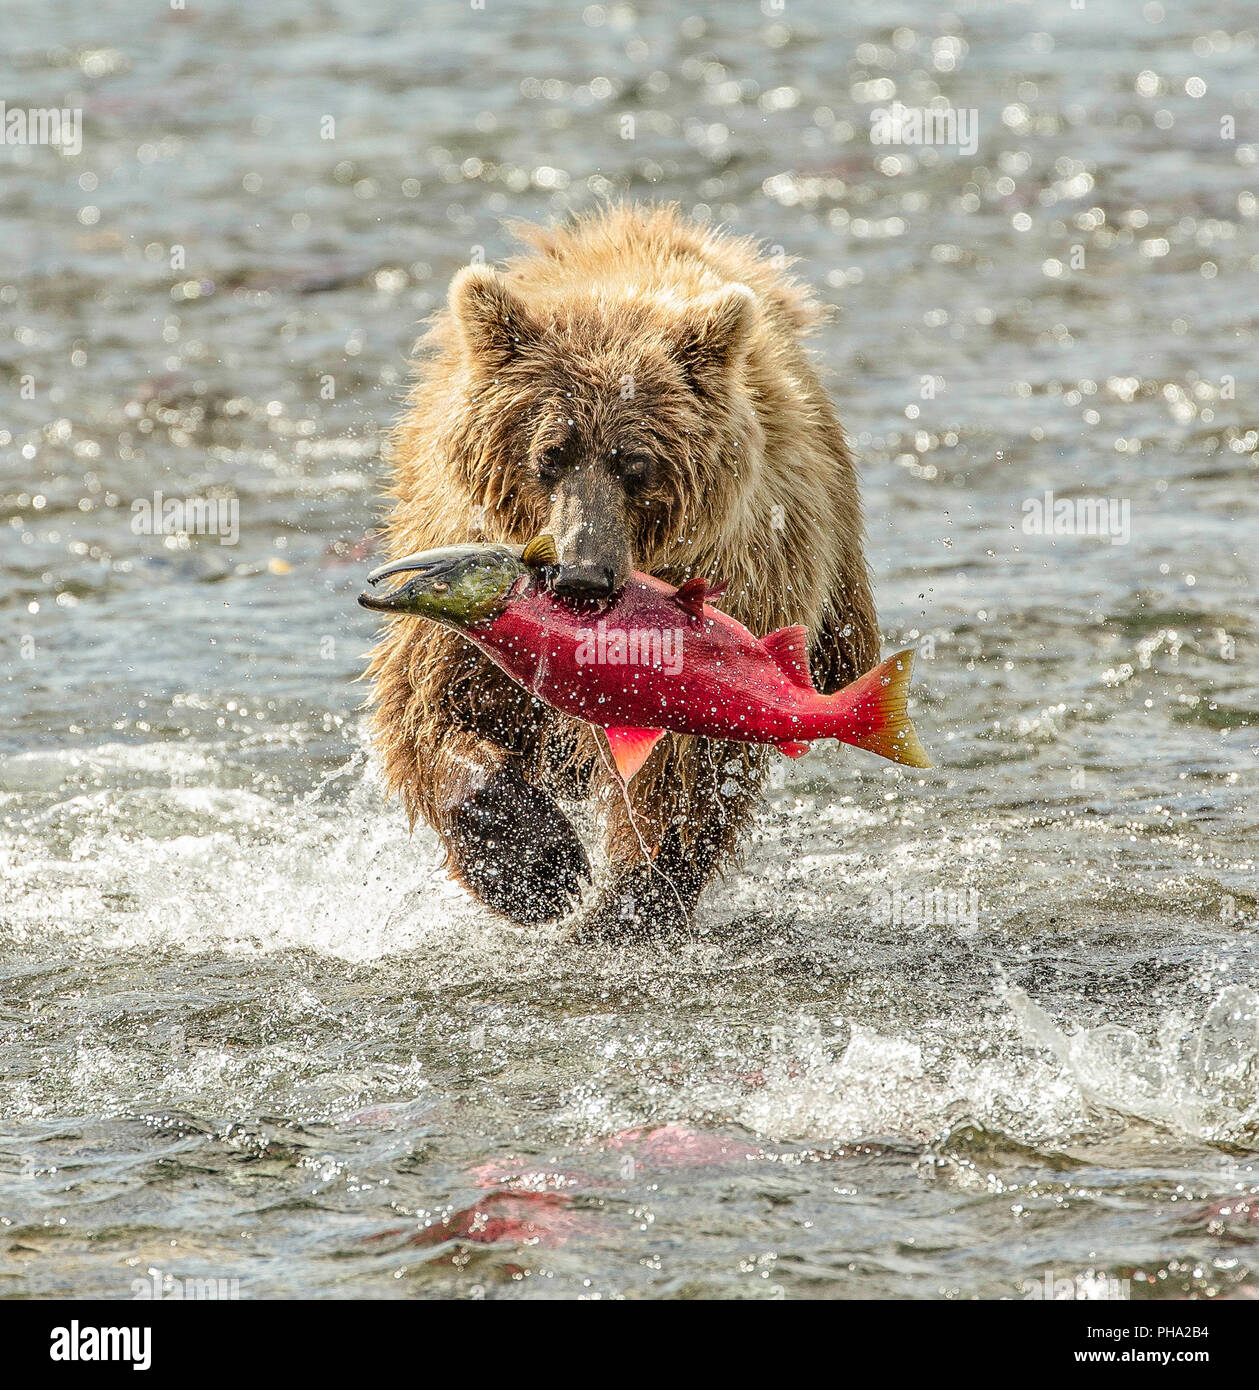 Portrait of Coastal Brown Bear ( Ursus Arctos) in a river with a spawned sockeye salmon in mouth walking towards the camera - Stock Image